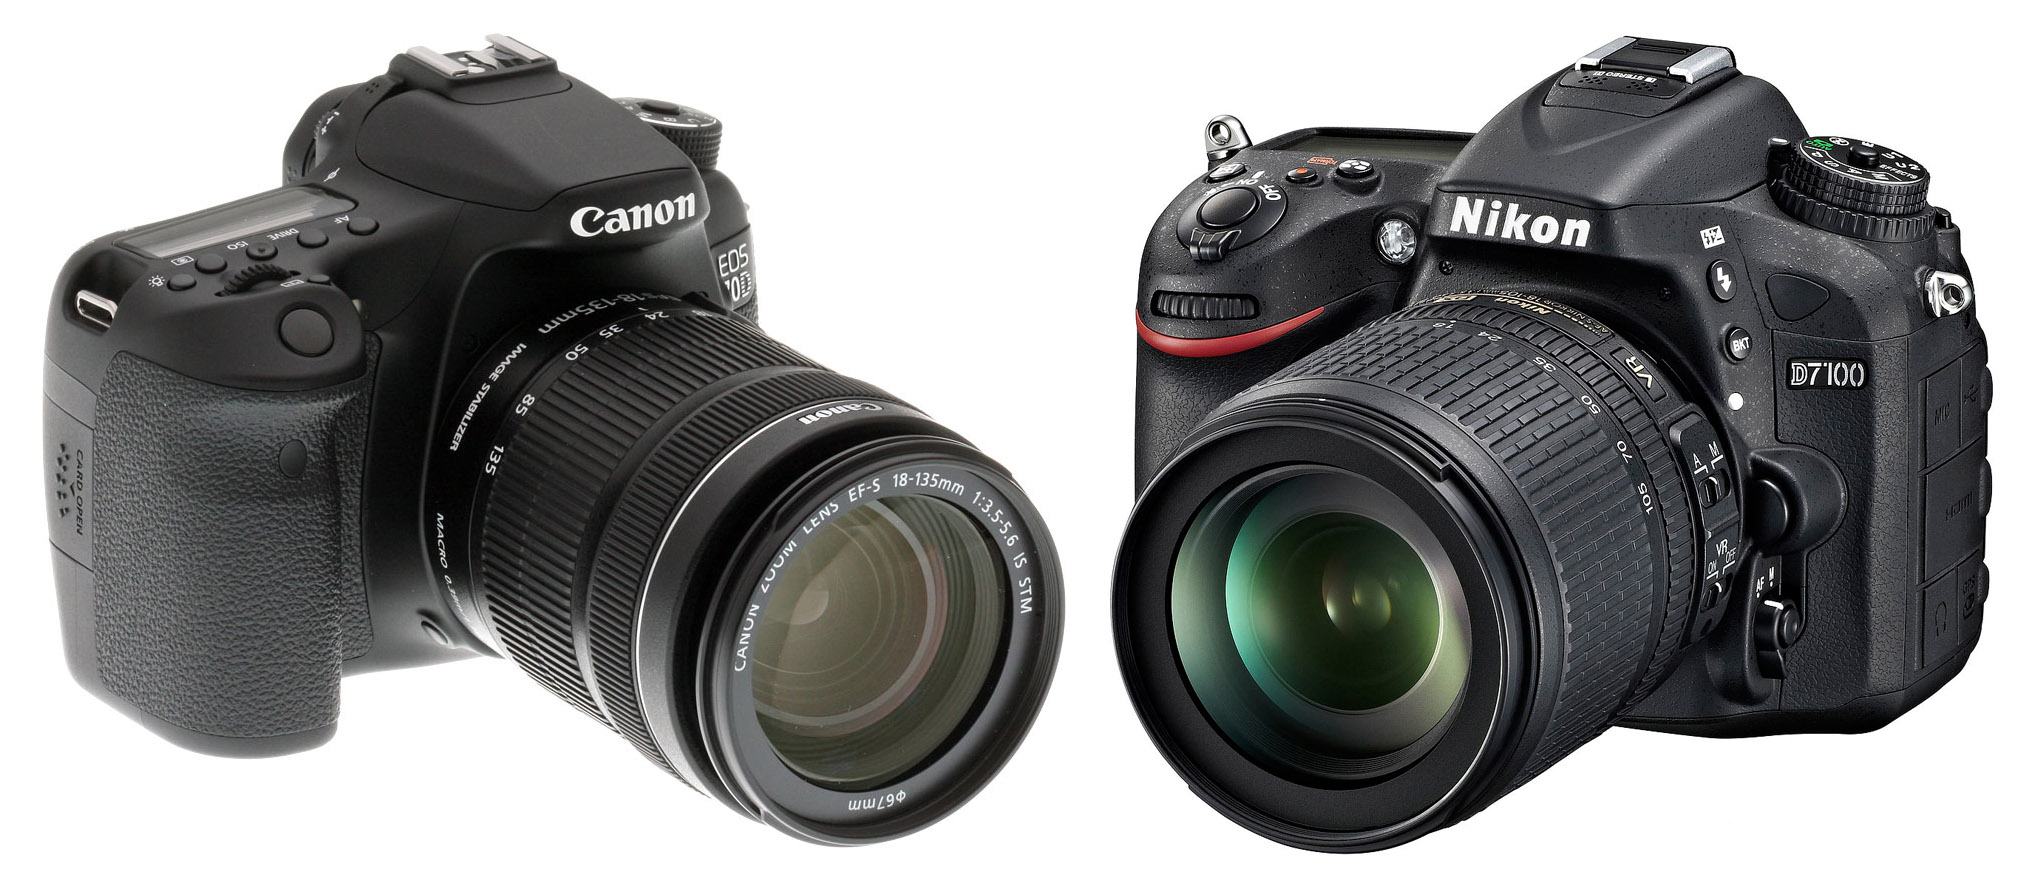 Camera Nikon New Dslr Camera lending new nikon and canon dslr cameras pennwic at the suggestion of a lab user vitale digital media recently added some brand 70d d7100 to our equipment l